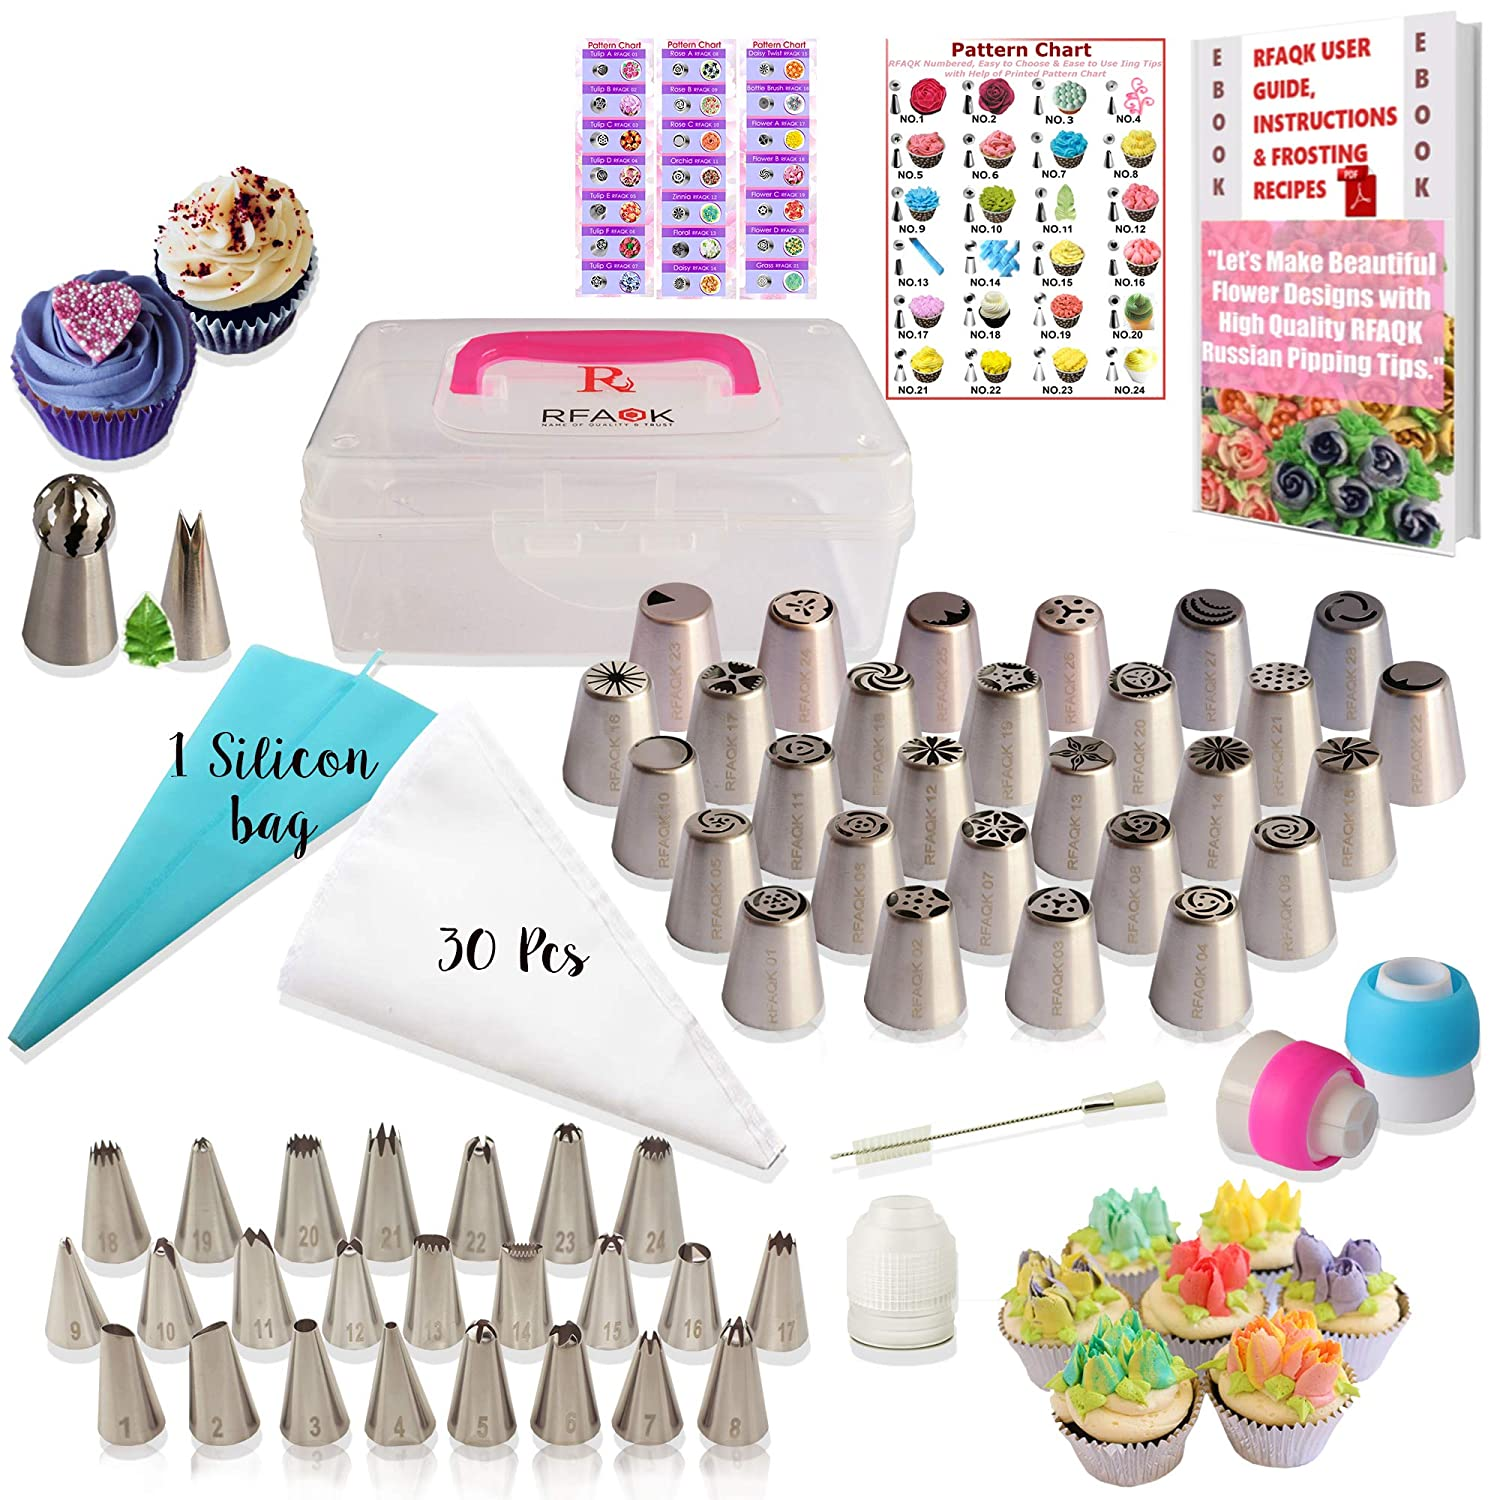 RFAQK- 90 Pcs Russian piping tips set with storage case – Cake decorating supplies kit – 54 Numbered easy to use icing nozzles (28 Russian + 25 Icing + 1 Ball tip) – Pattern chart, Ebook User Guide R-10